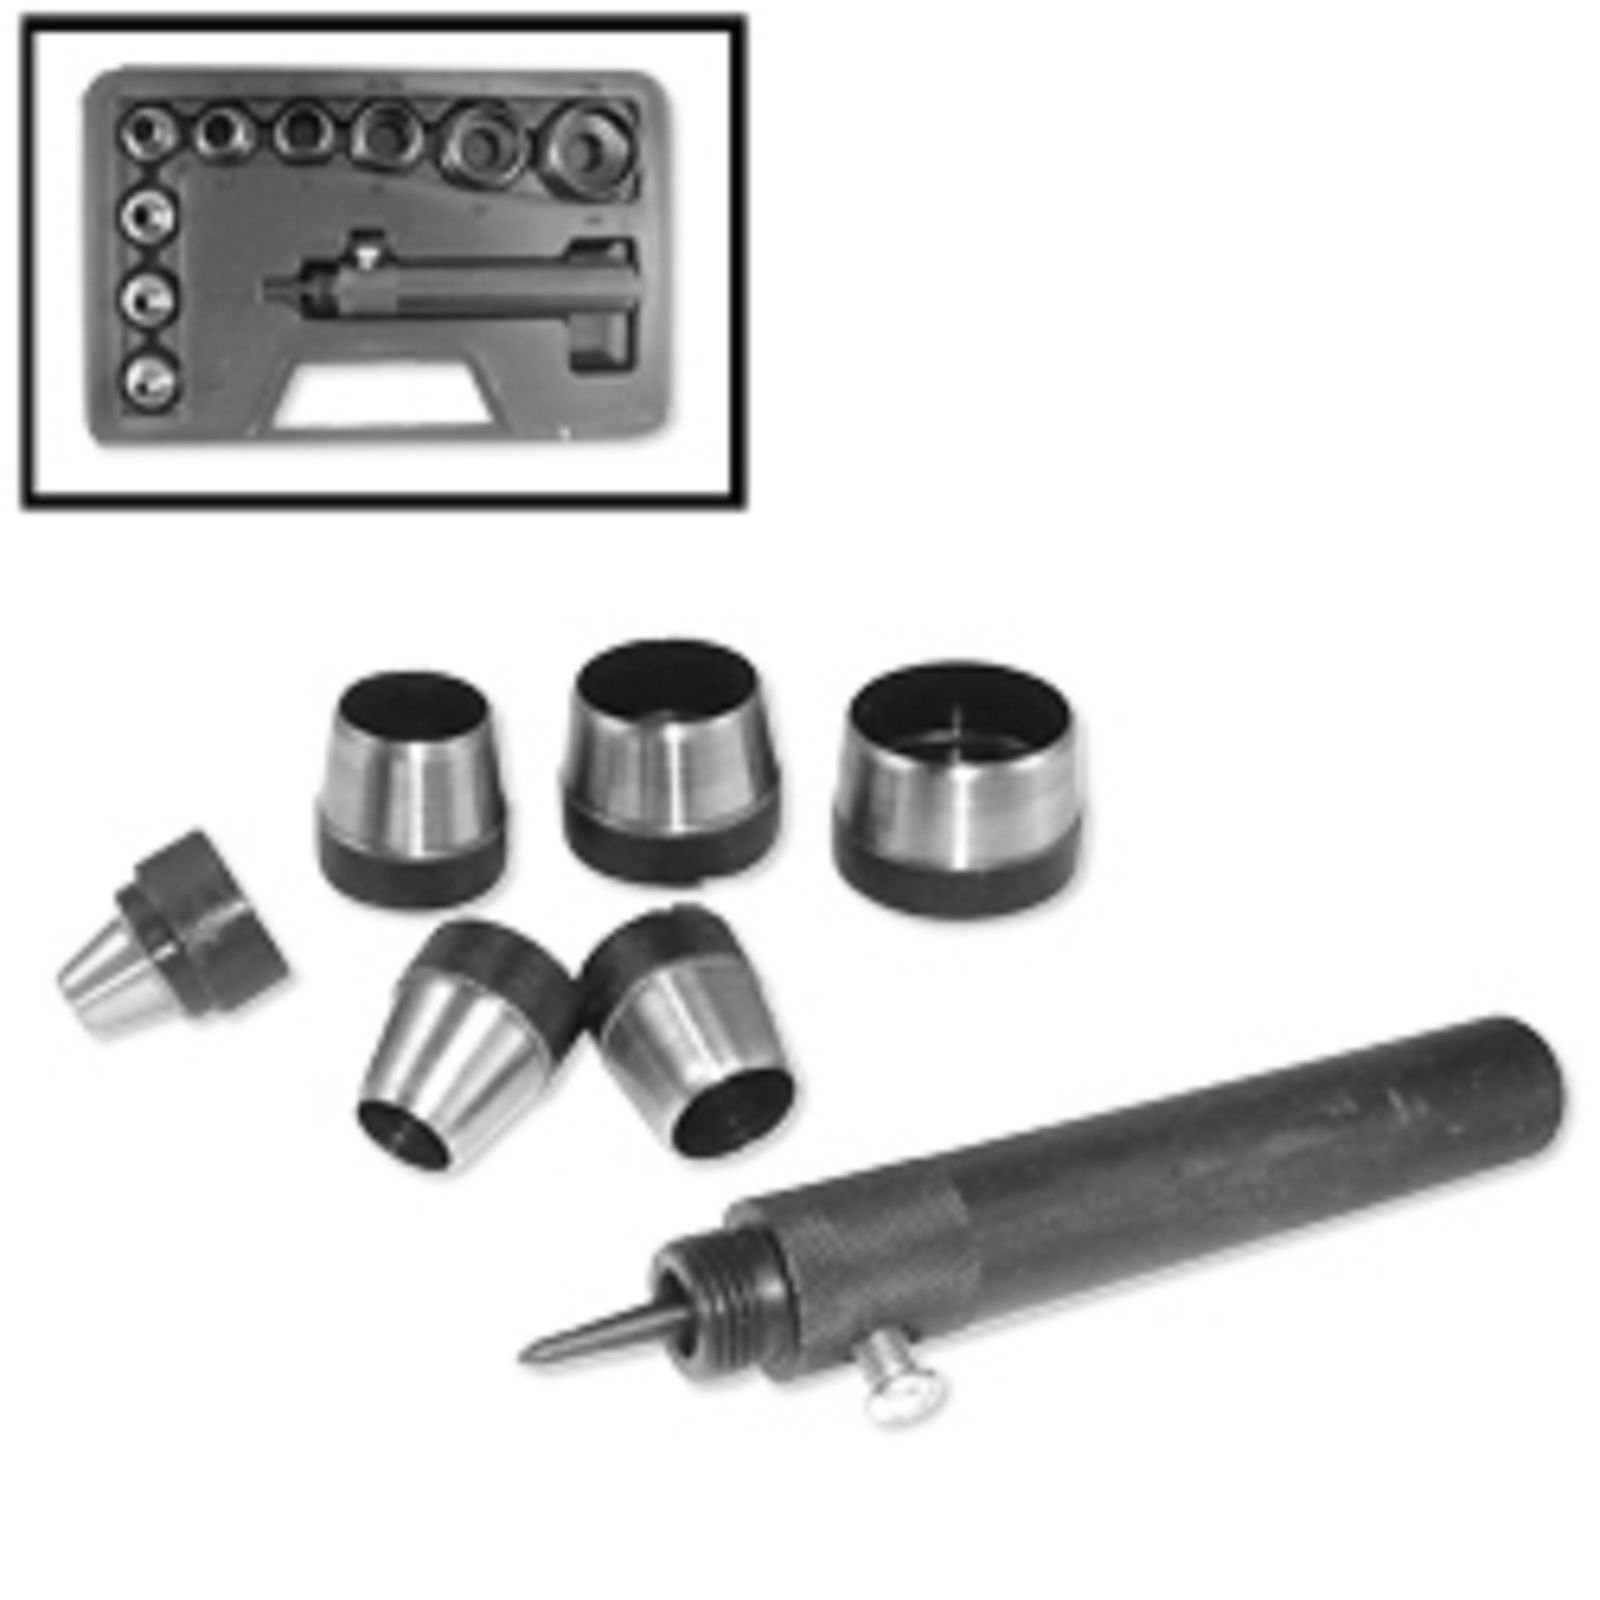 ESKALEX>>10pc Heavy Duty Hollow Punch Set And 10pc Heavy Duty Hollow Punch Set